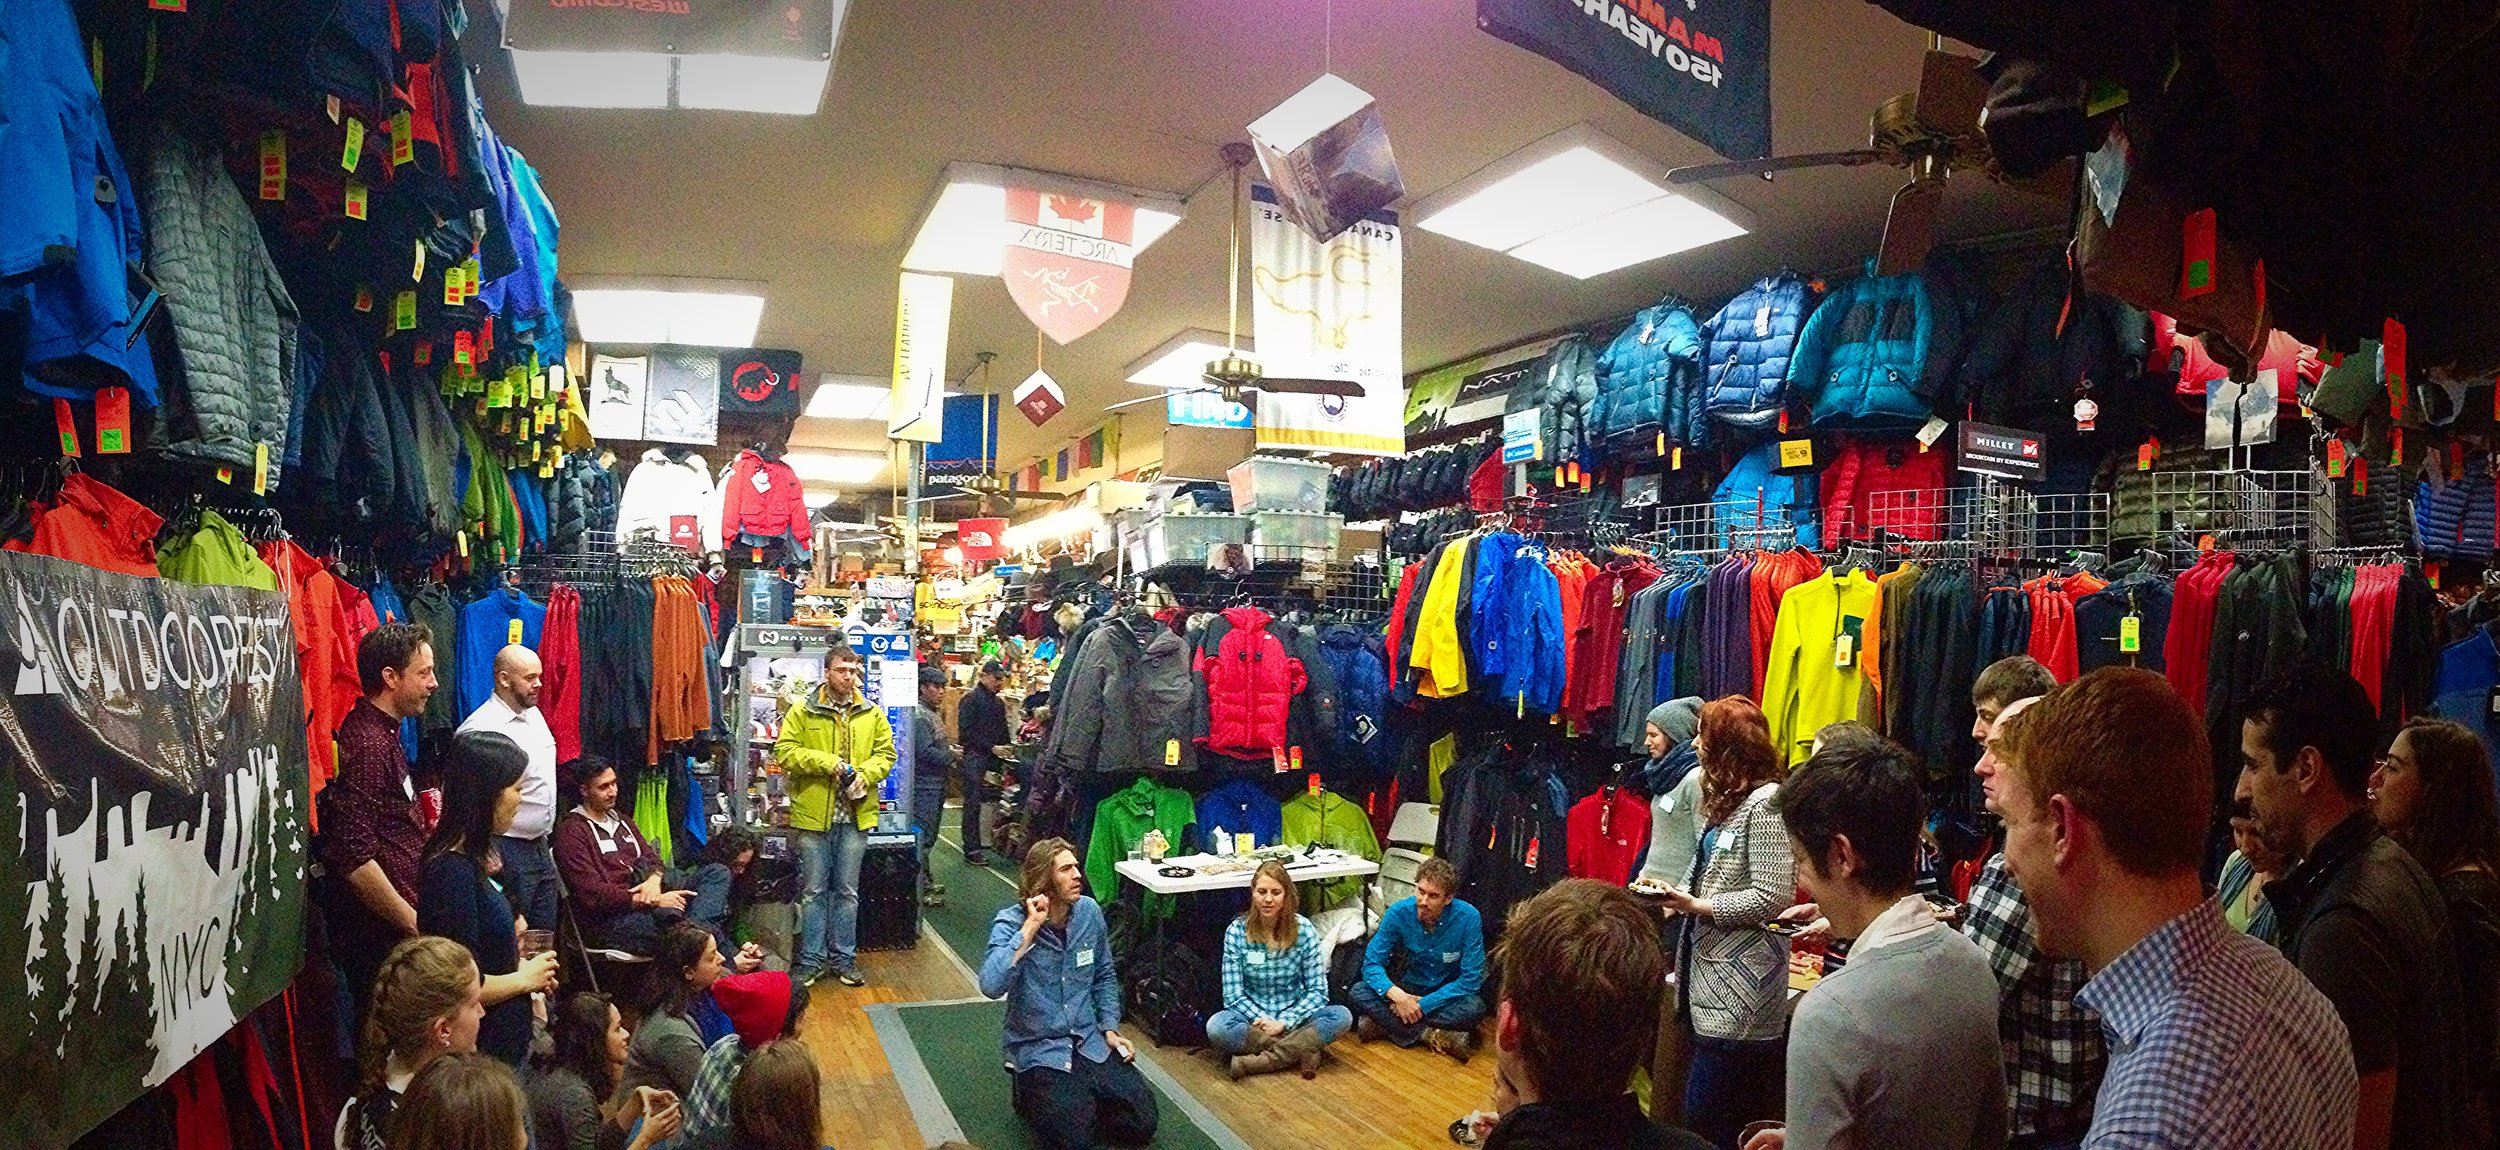 The Best Stores to Find Outdoor Gear in NYC & The Best Stores to Find Outdoor Gear in NYC u2014 OutdoorFest